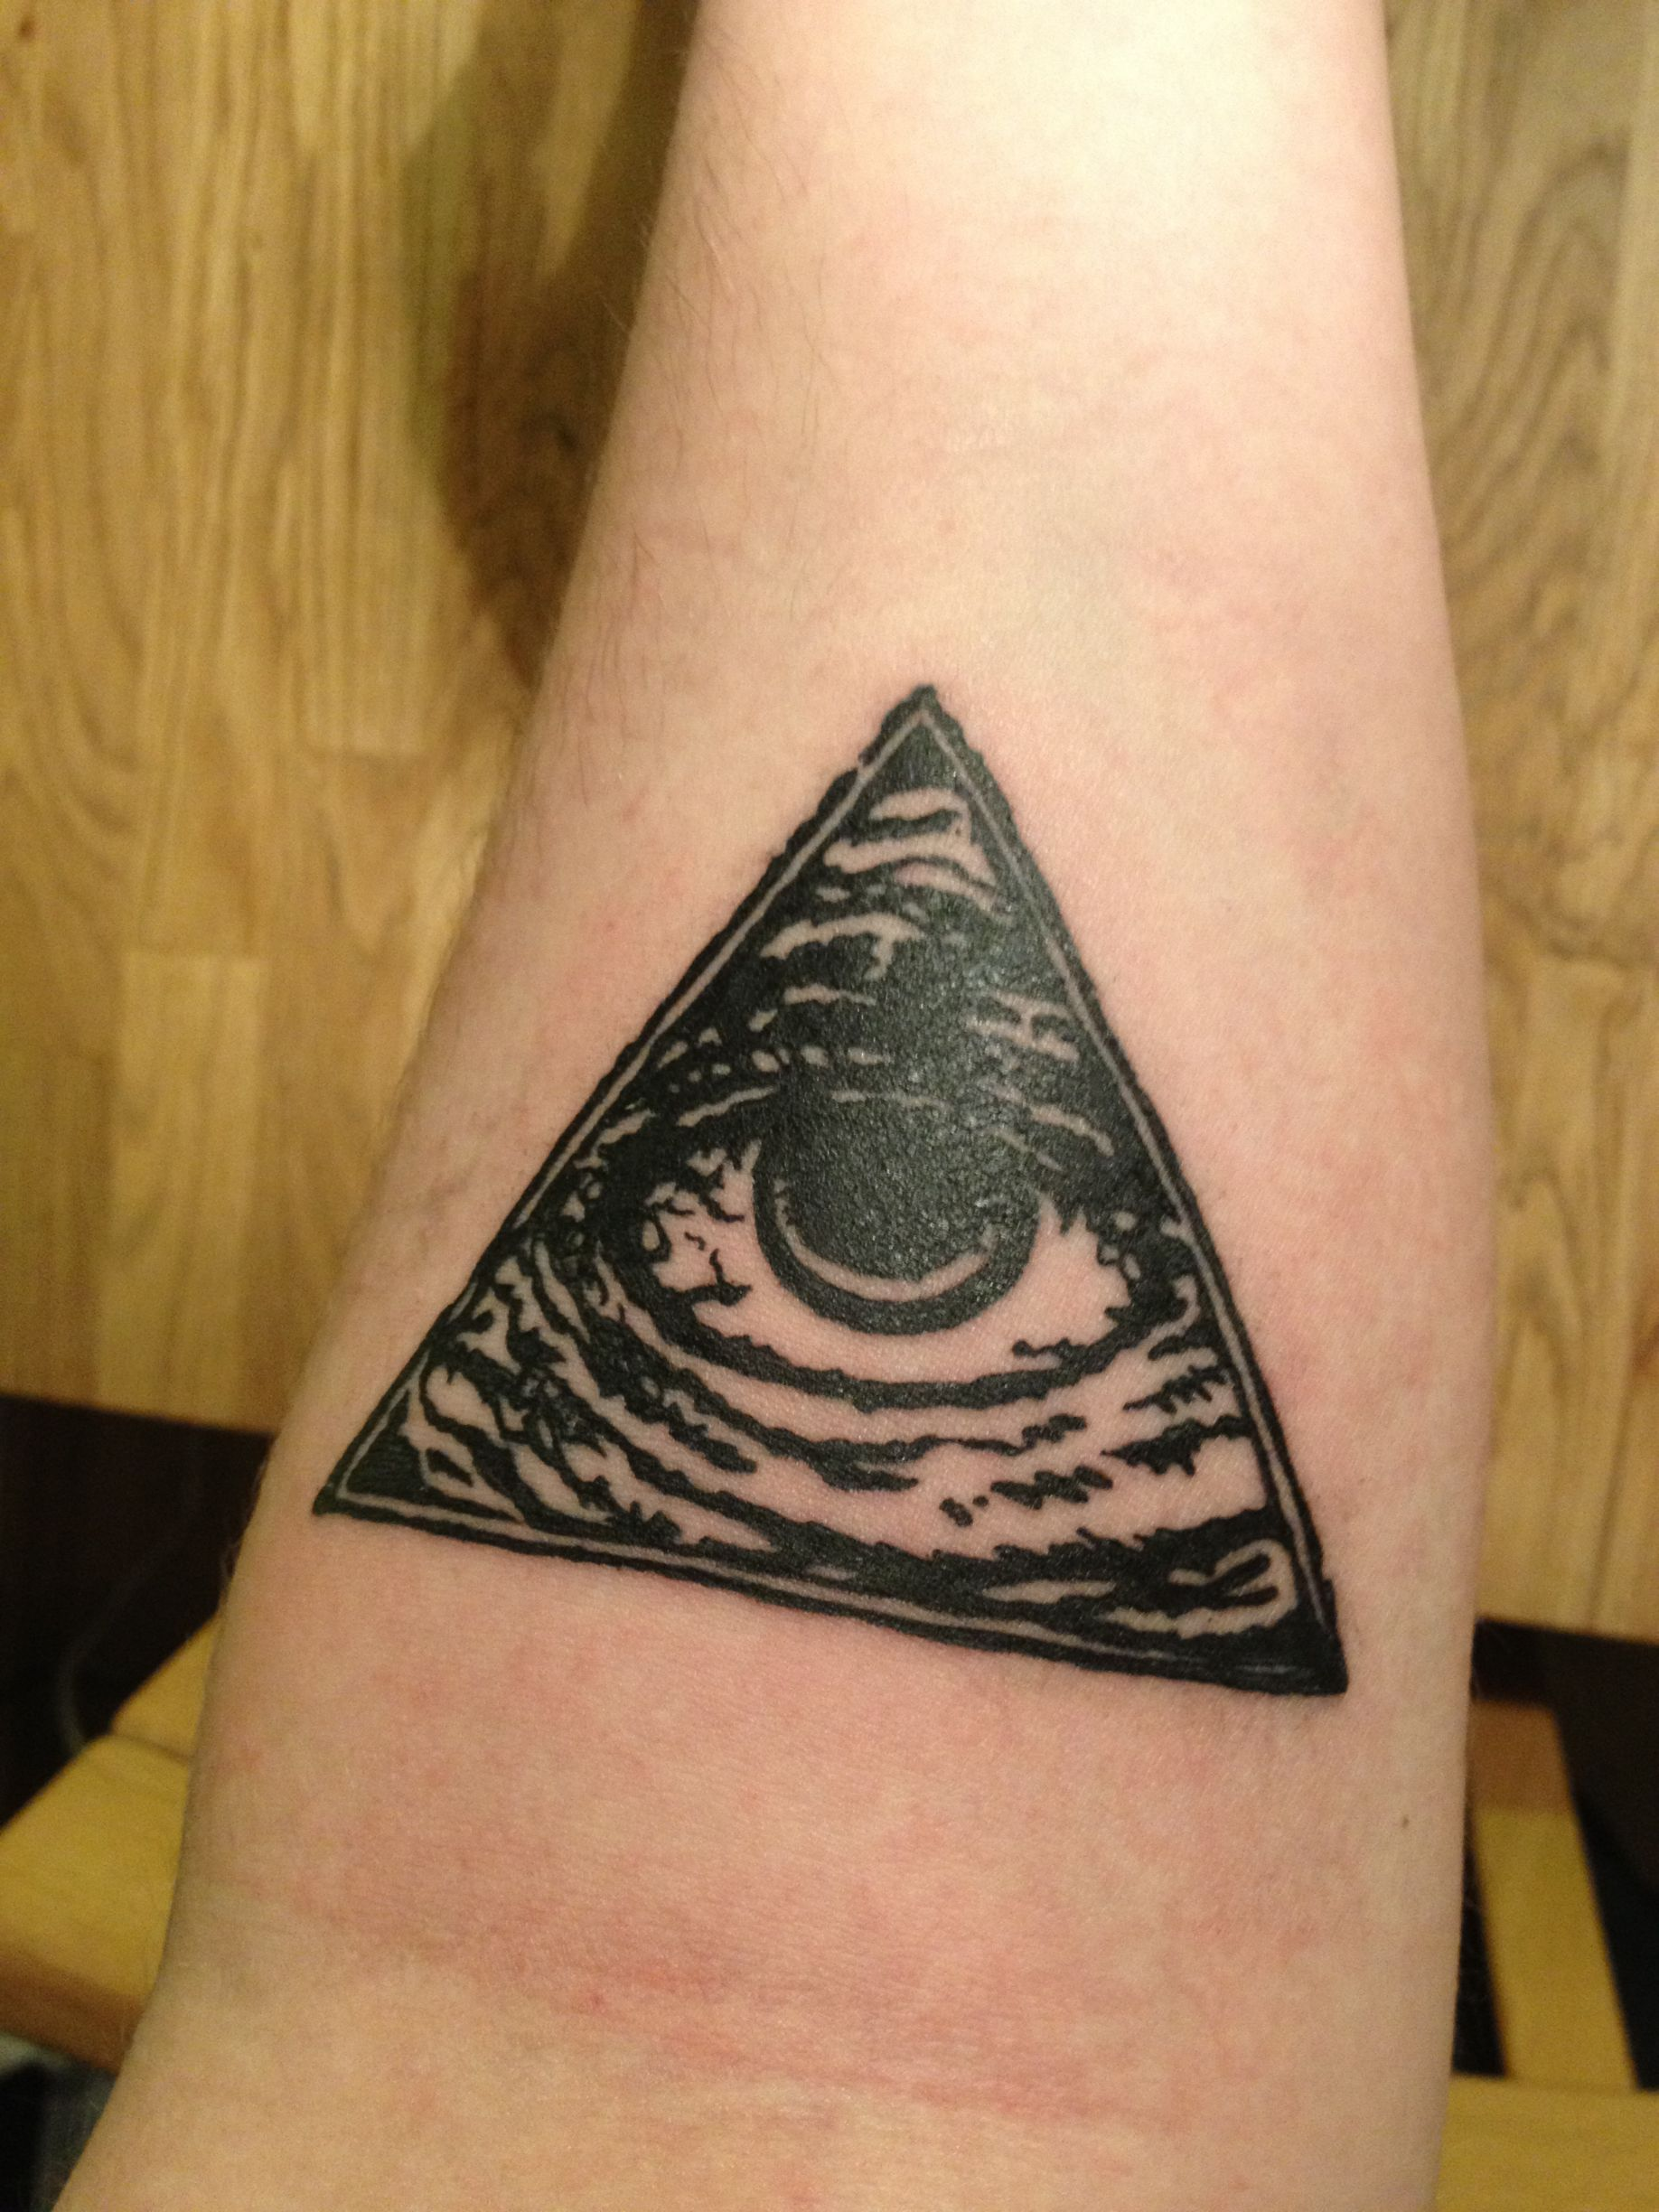 Illuminati Tattoos Designs, Ideas and Meaning | Tattoos ...